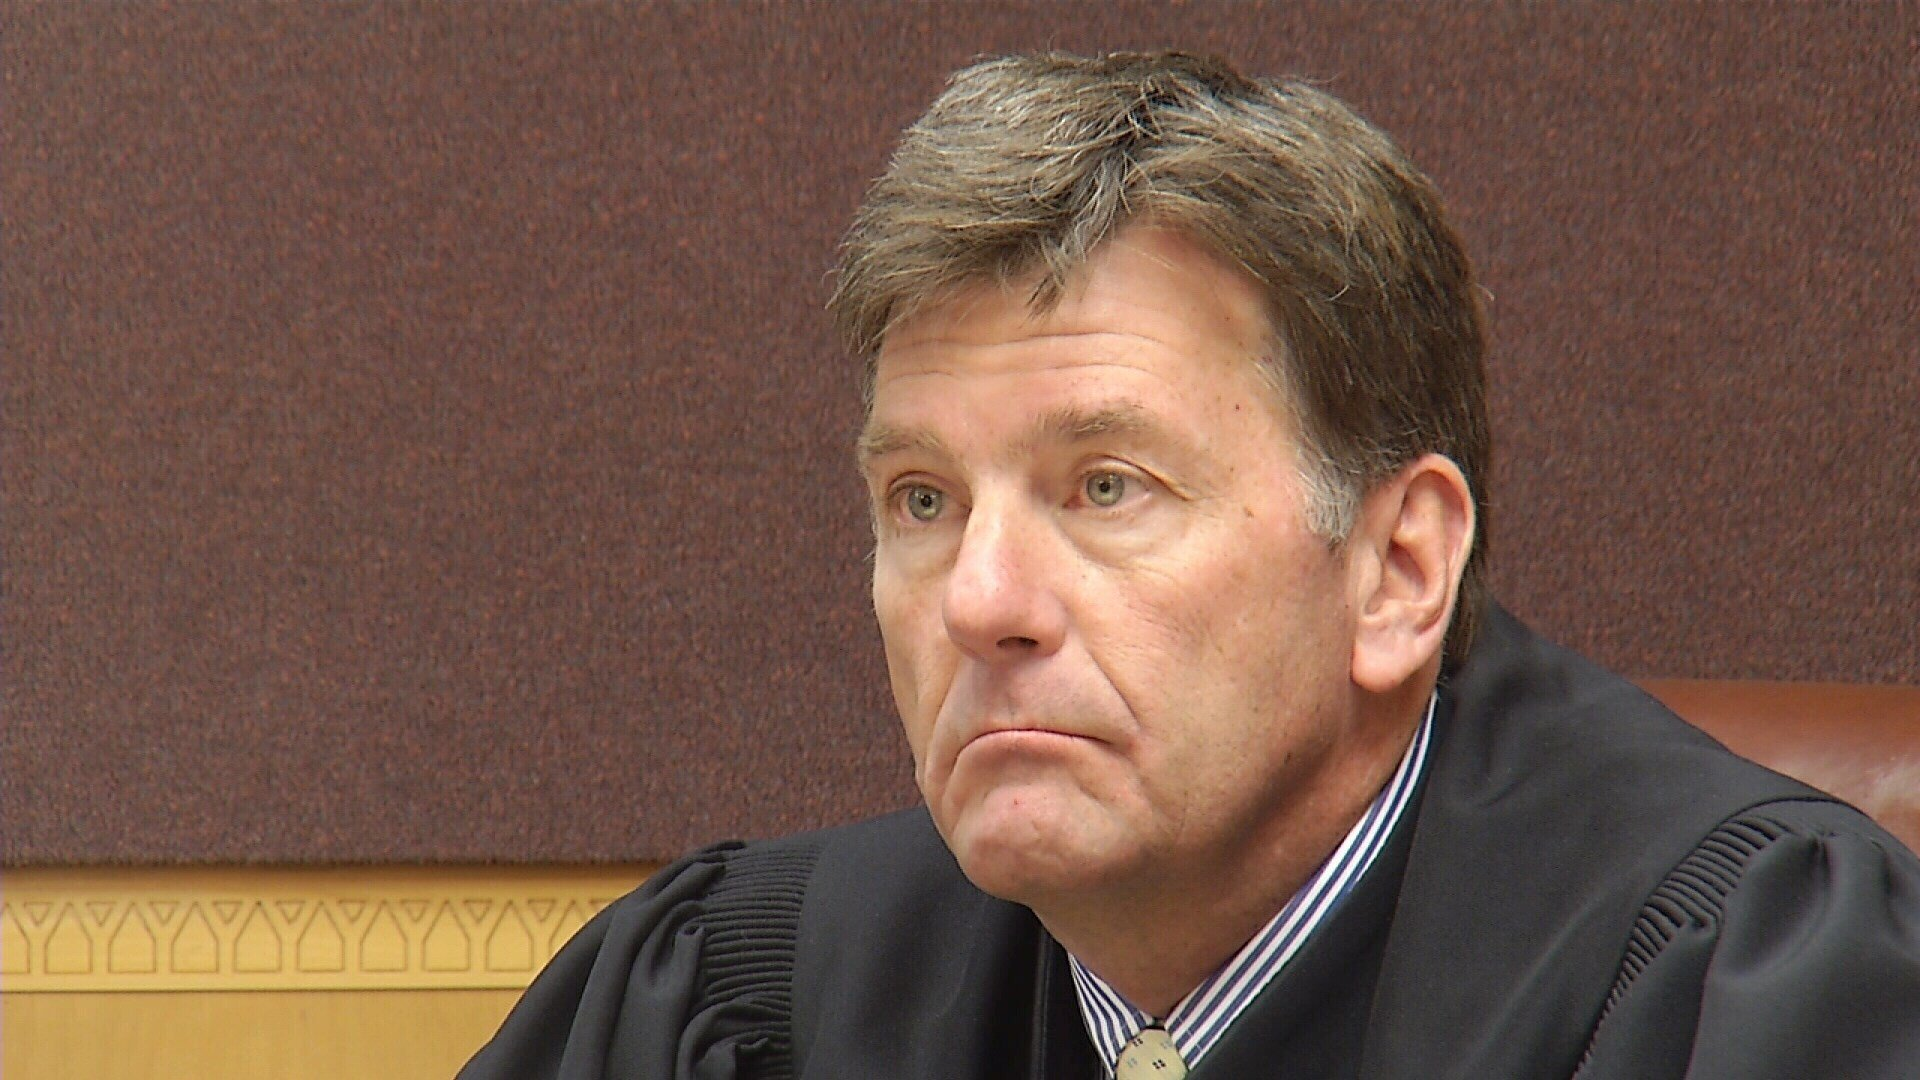 Seven people have submitted applications to replace District Court Judge Russell Fagg pictured above. (MTN News file photo)